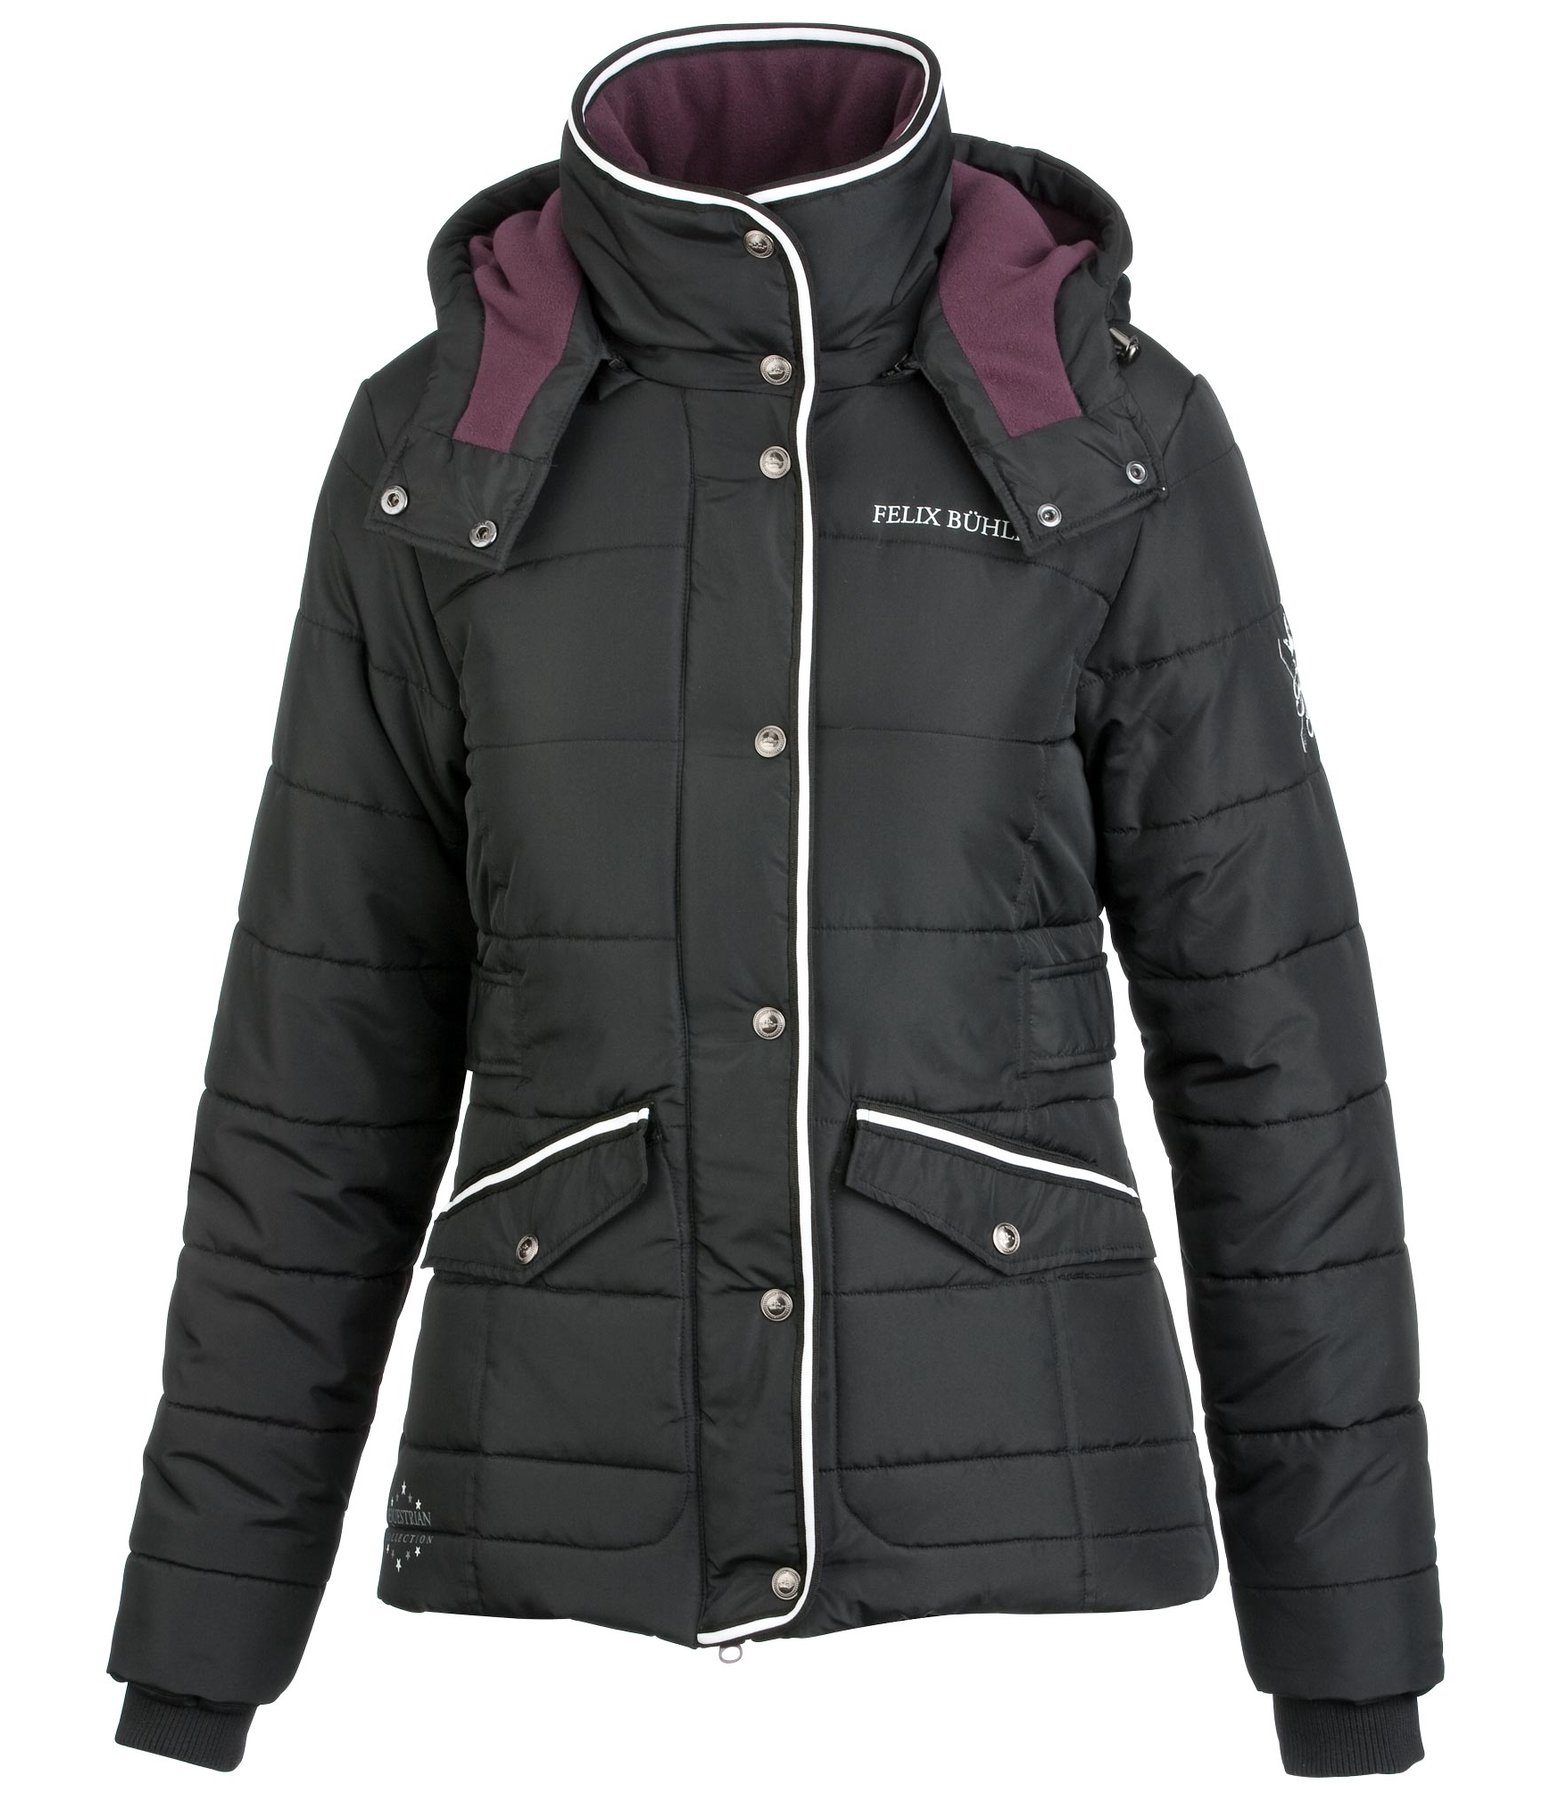 cotton jacket iluxdb quilted quilt luxury riding burberry waxed